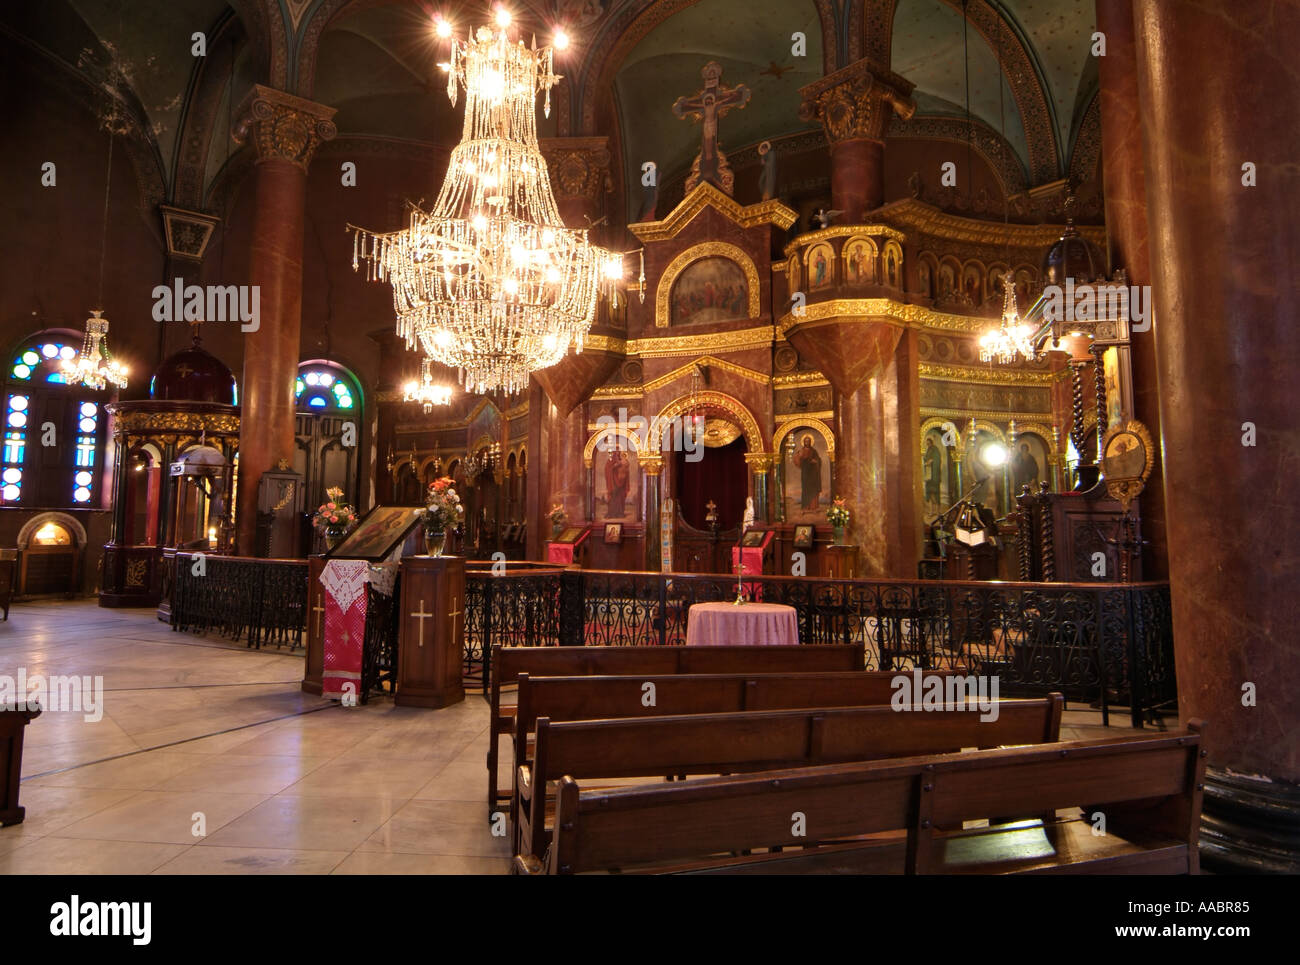 Greek Orthodox Church of St. George, Coptic Cairo, Egypt - Stock Image